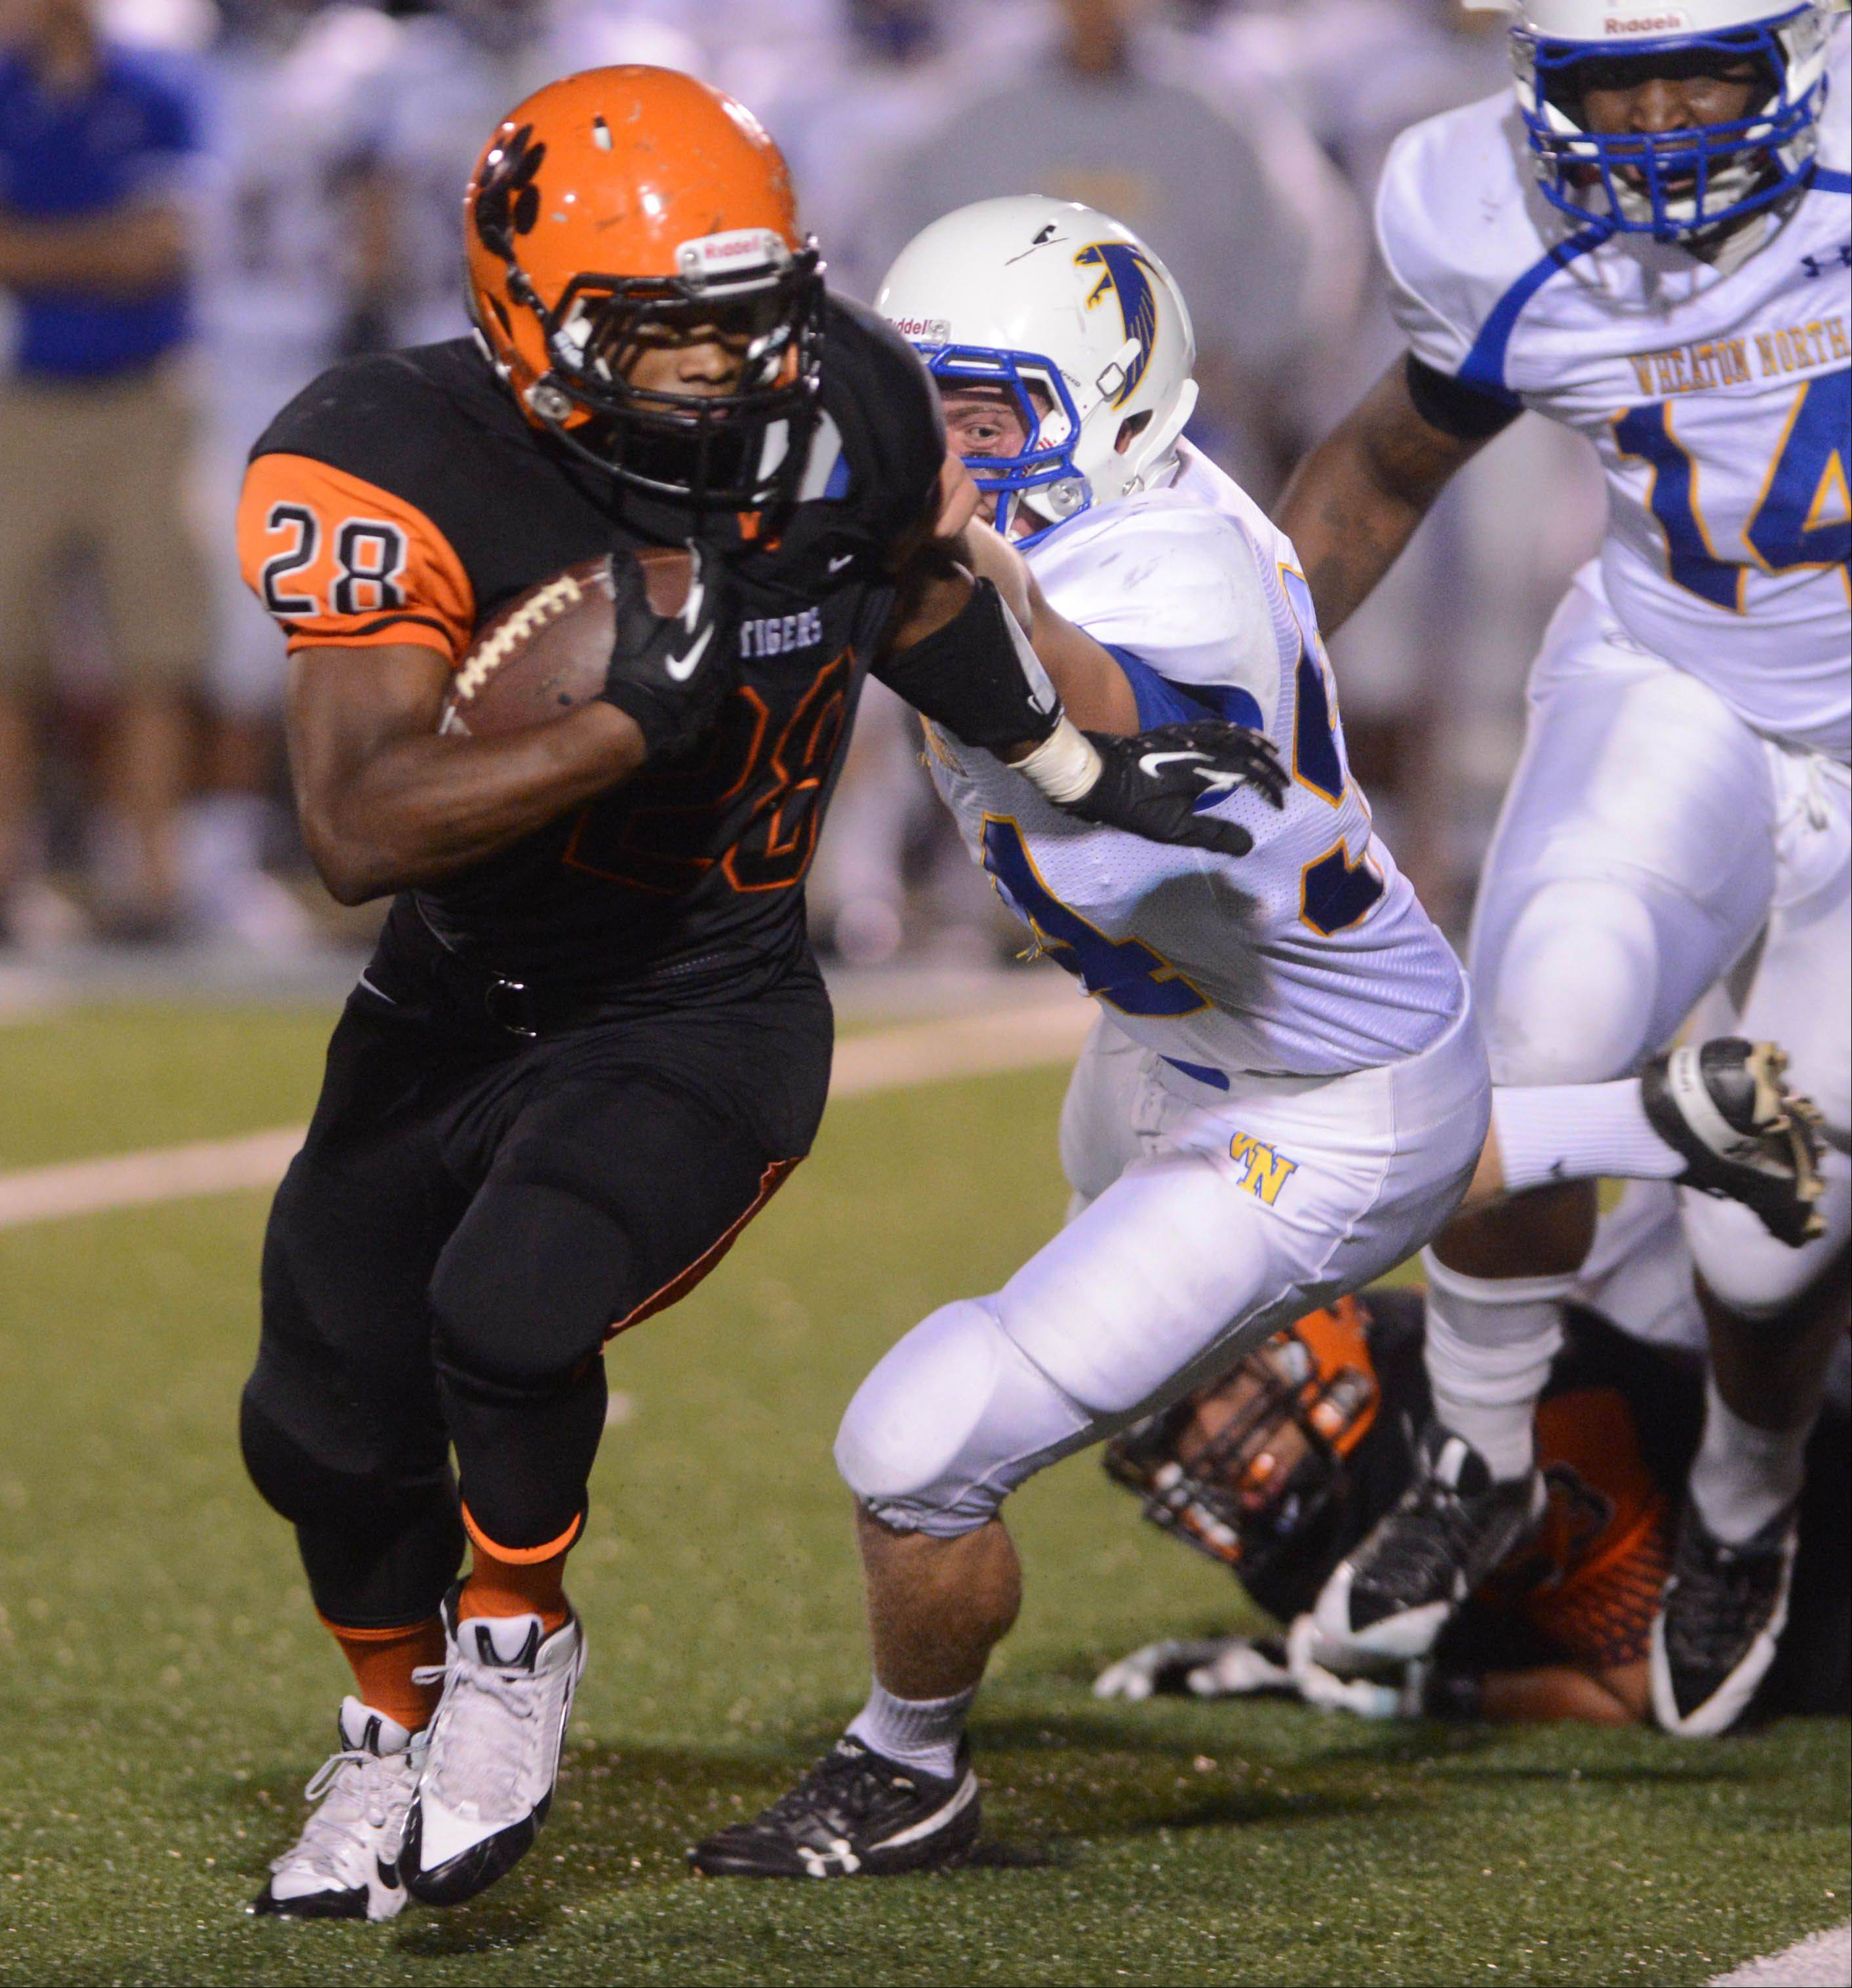 Isaiah Campos of Wheaton Warrenville South outruns a Wheaton North defender on Friday.